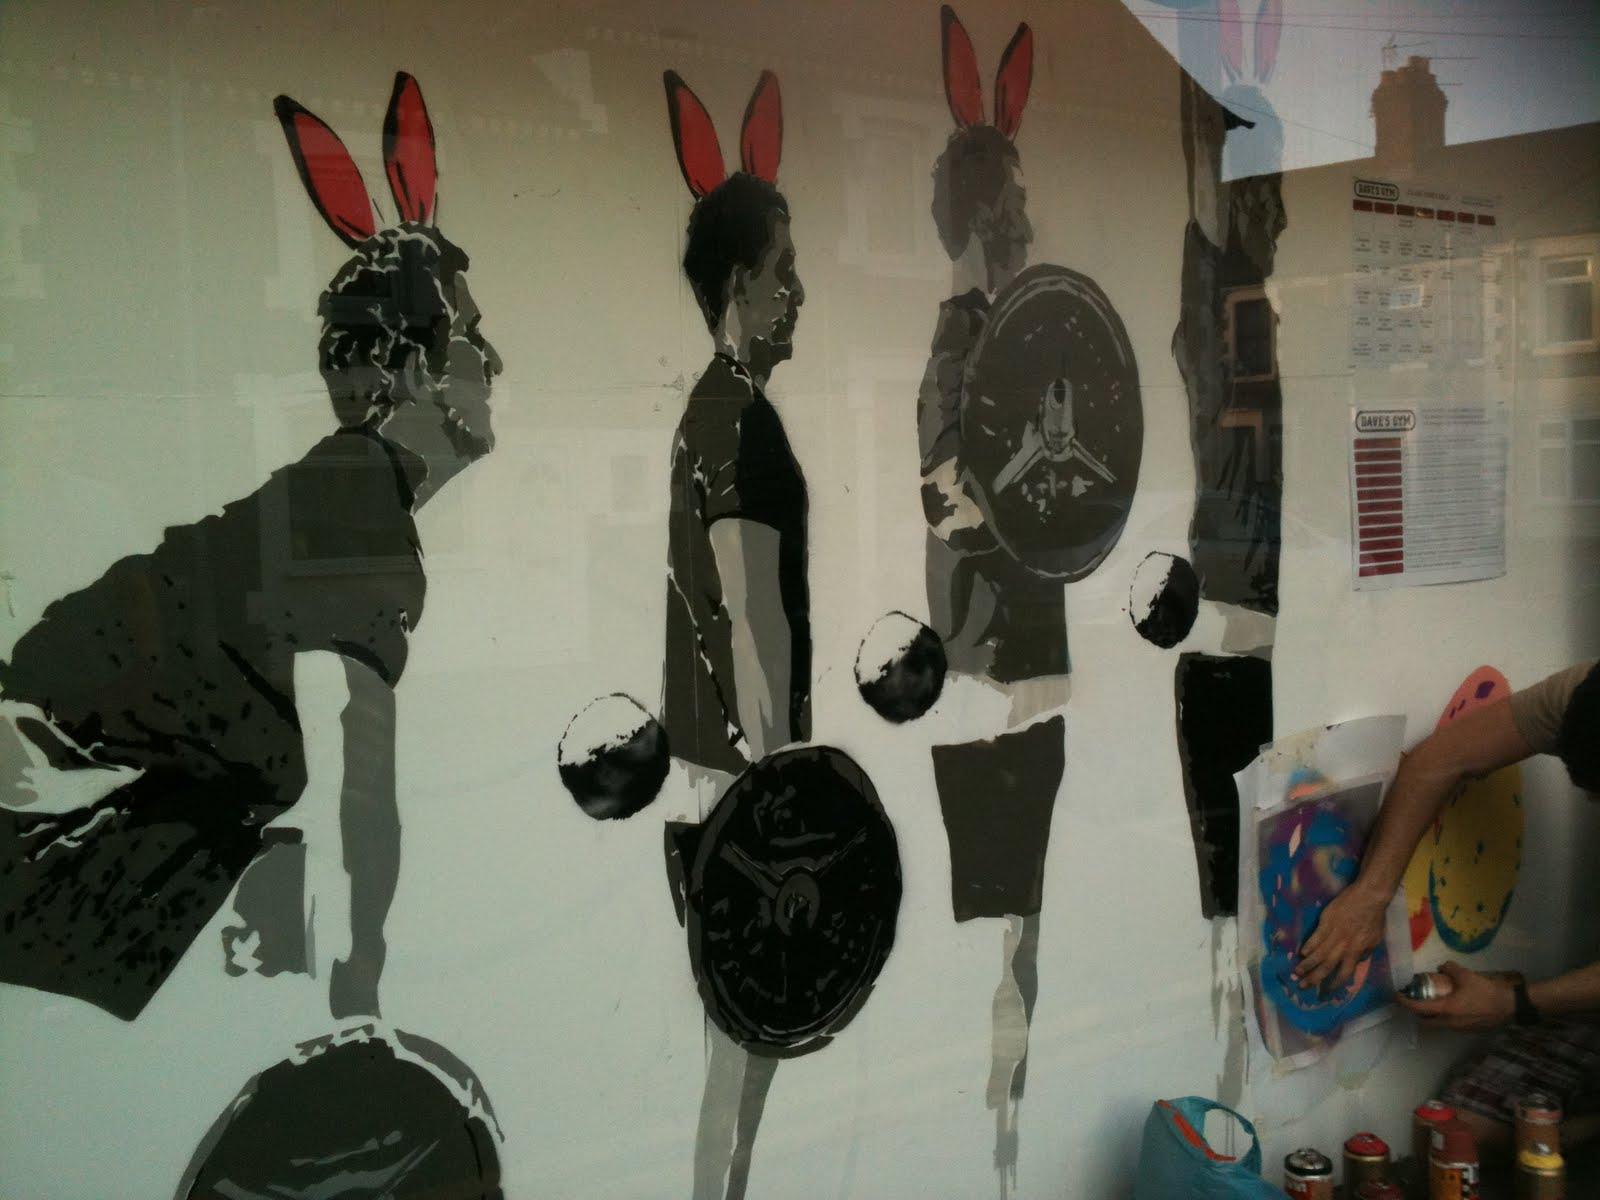 A gym window display with a twist for Easter given by the in-house graffiti artist, Remed Aran.